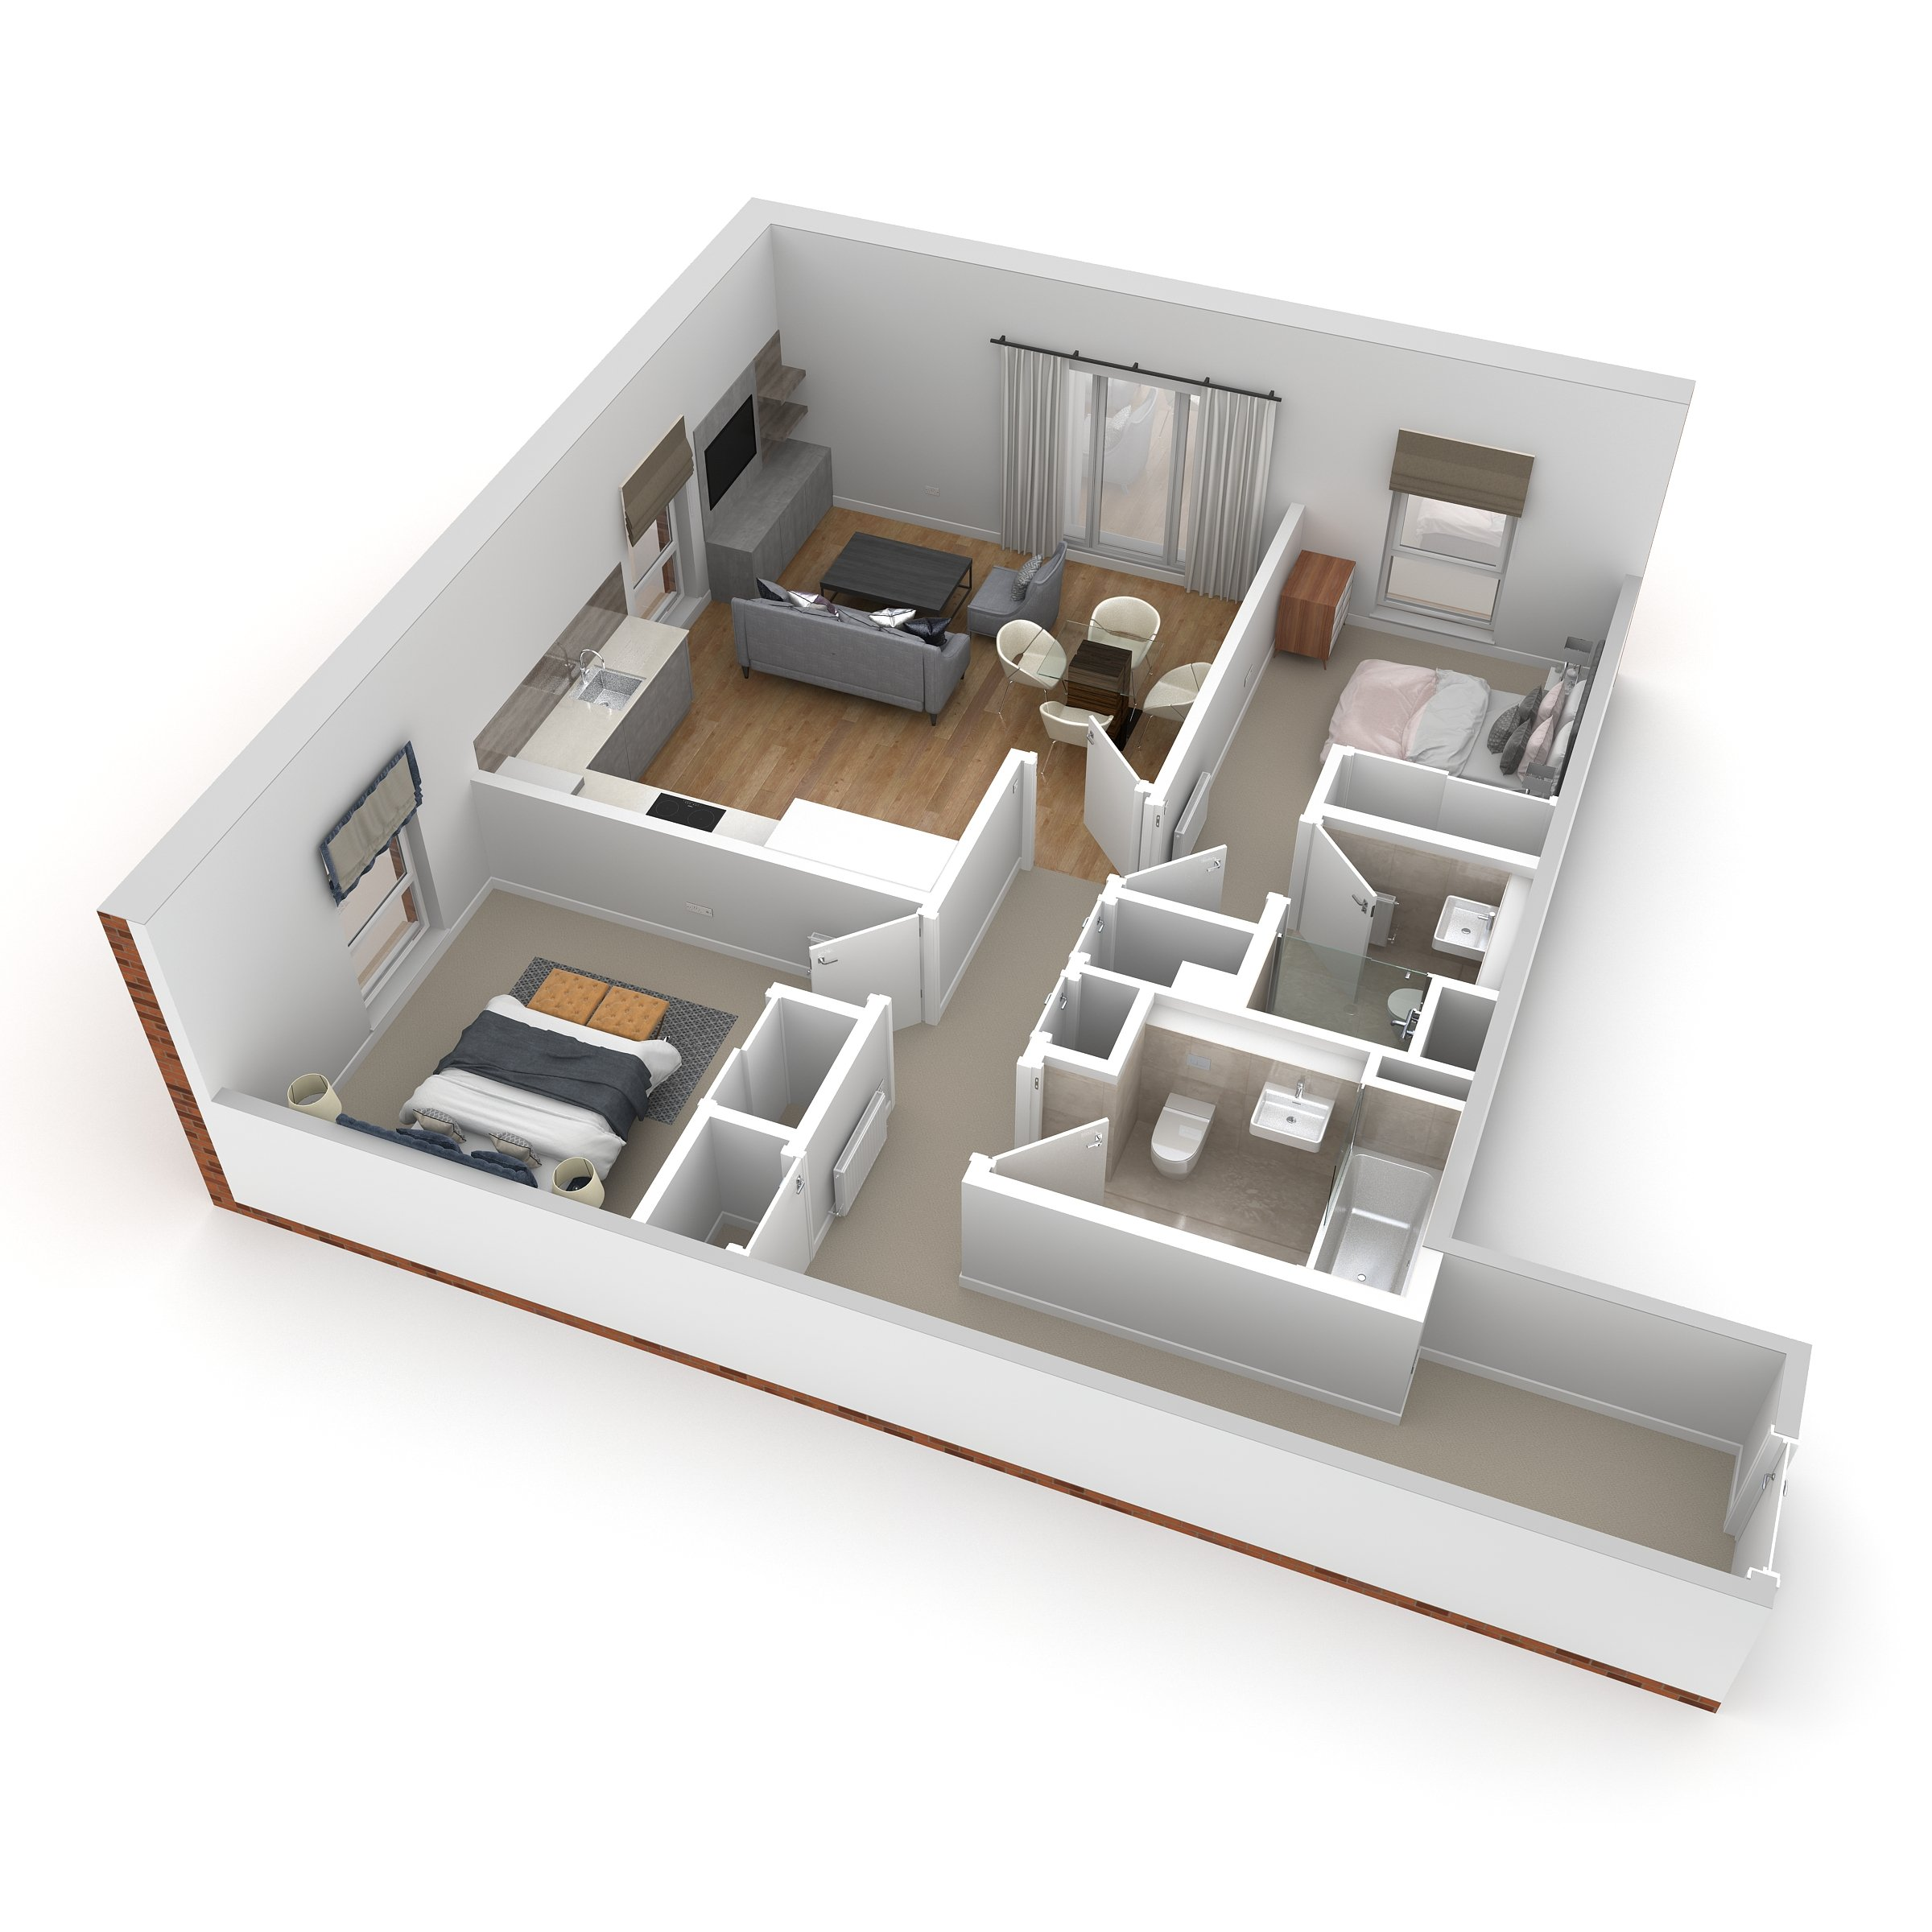 Floorplans for Apartment 6, 79 Durham Road, Edinburgh, Midlothian, EH15